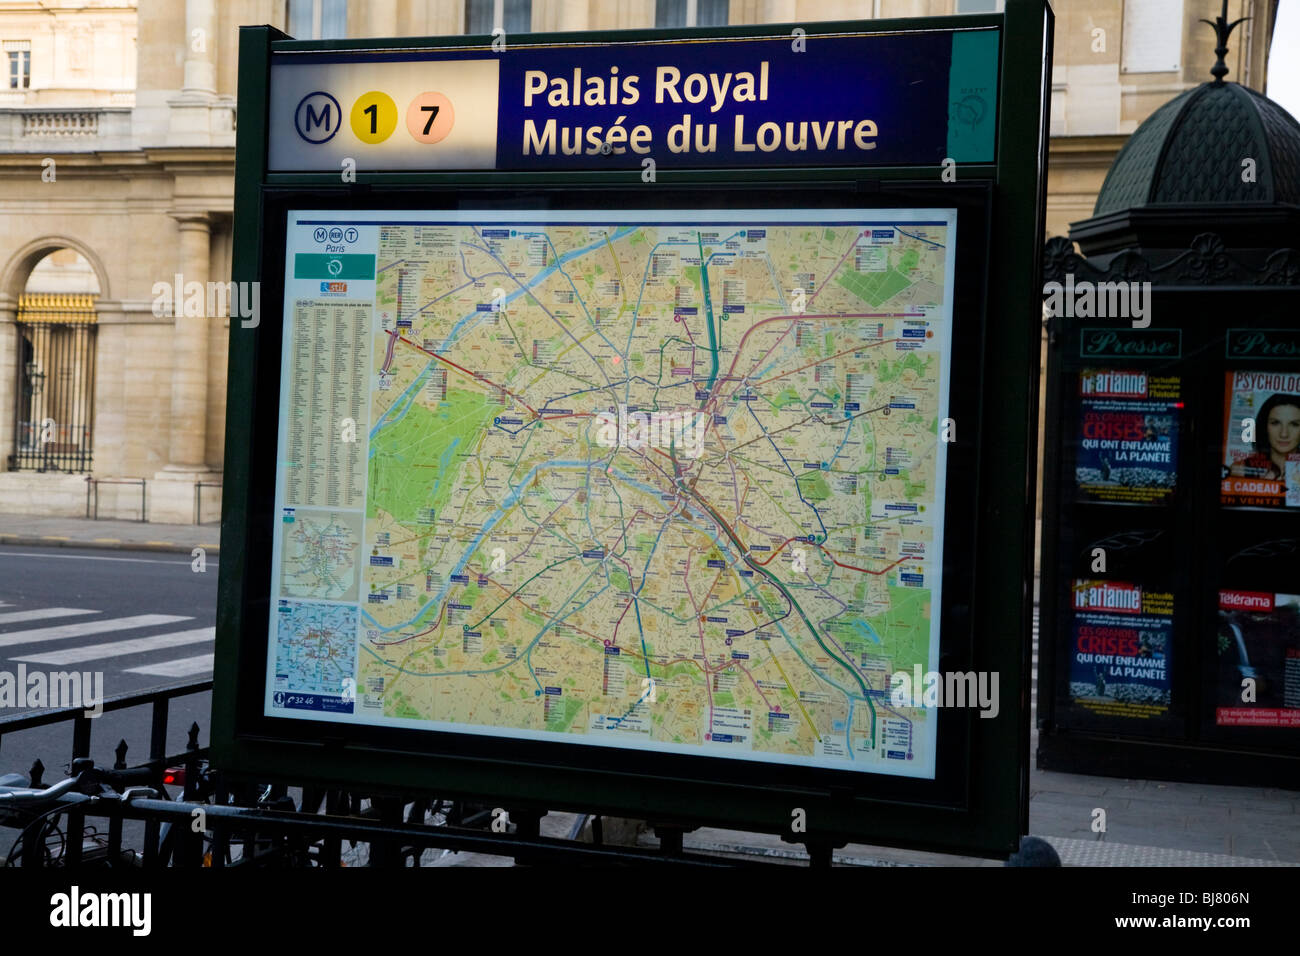 metro tube street tourist information street map of paris france at the musee louvre museum underground metro station